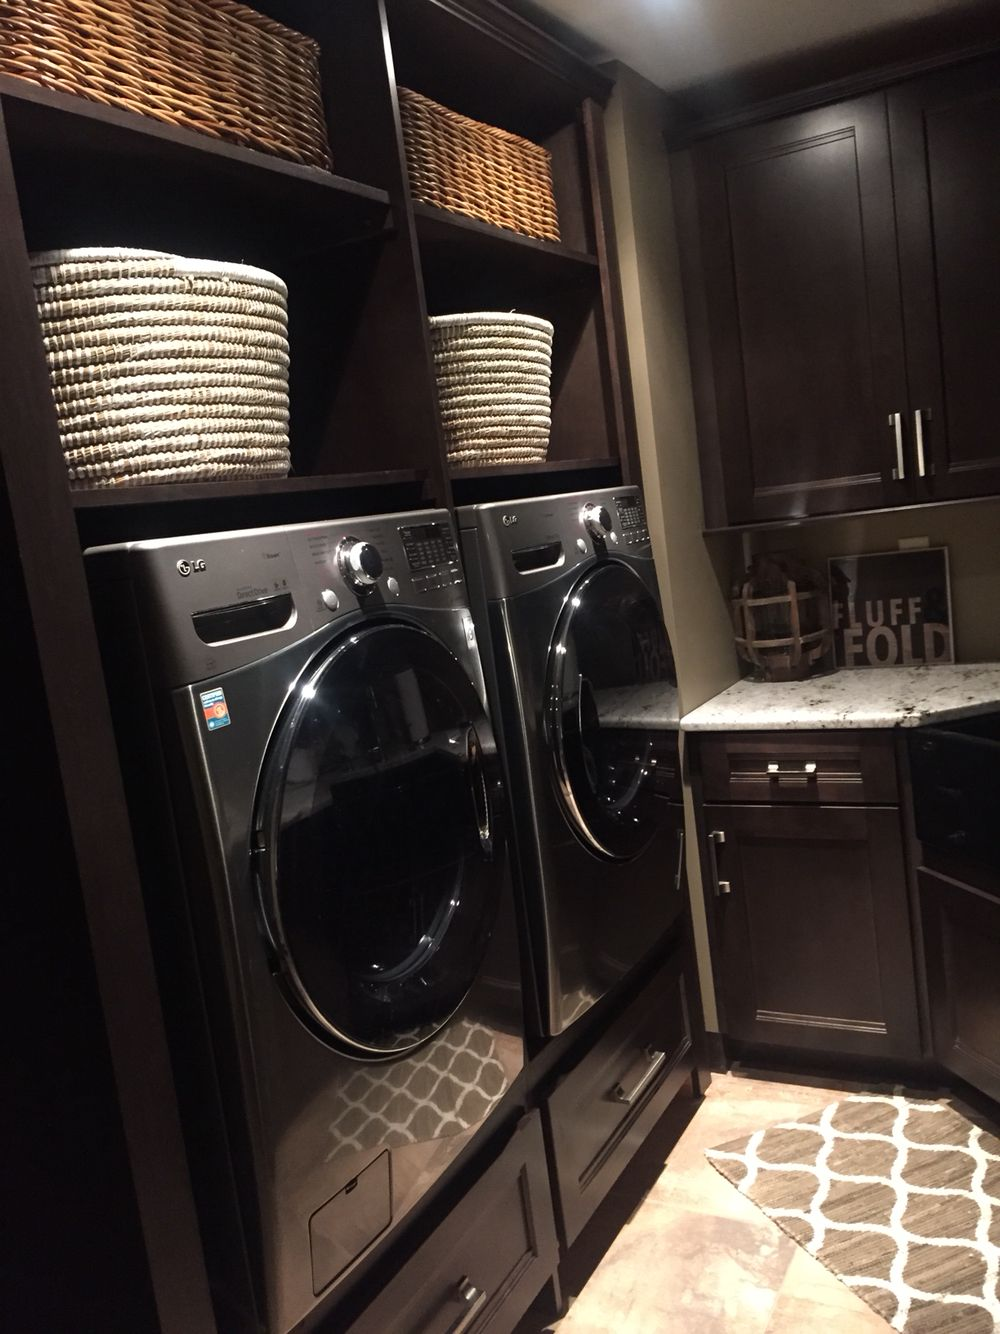 Laundry Room. Built In Cabinet Design. Side By Side Washer And Dryer Raised  Up On Top Of Cabinets, Enclosed. Dark Cabinets. Stainless Steel Appliances.